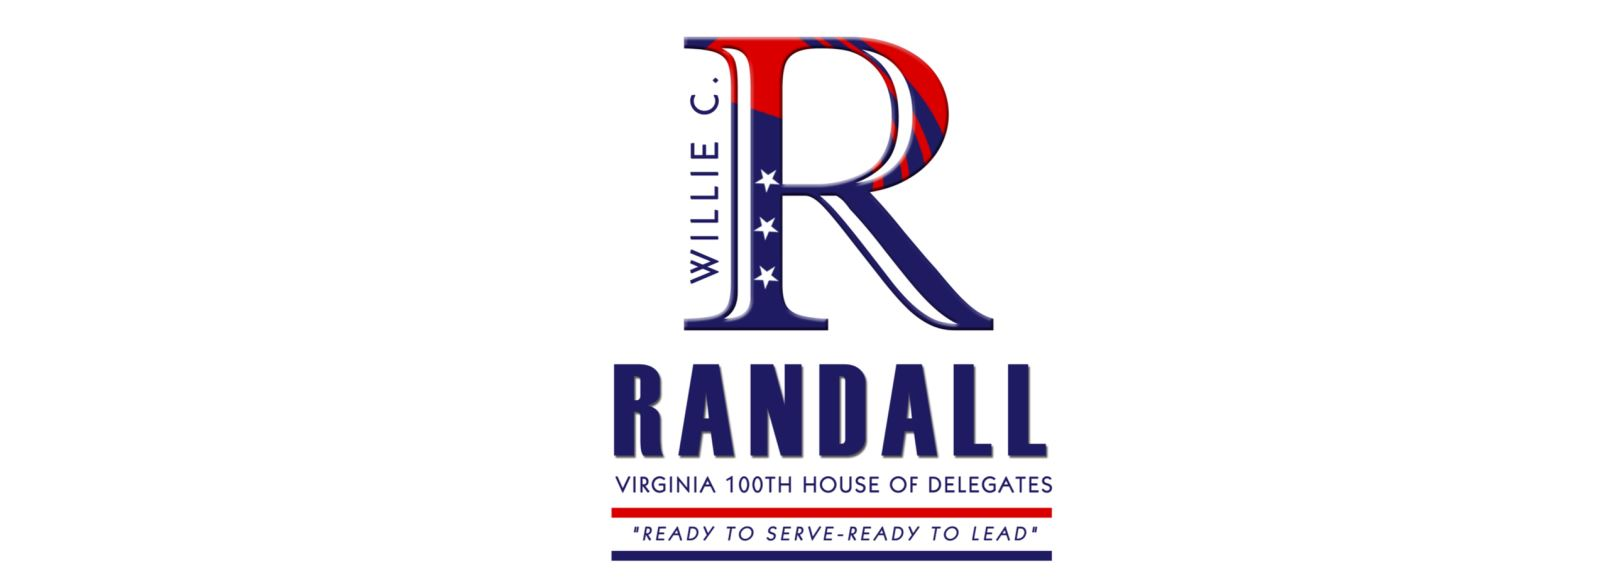 Official Website of Willie Randall for Virginia House of Delegates